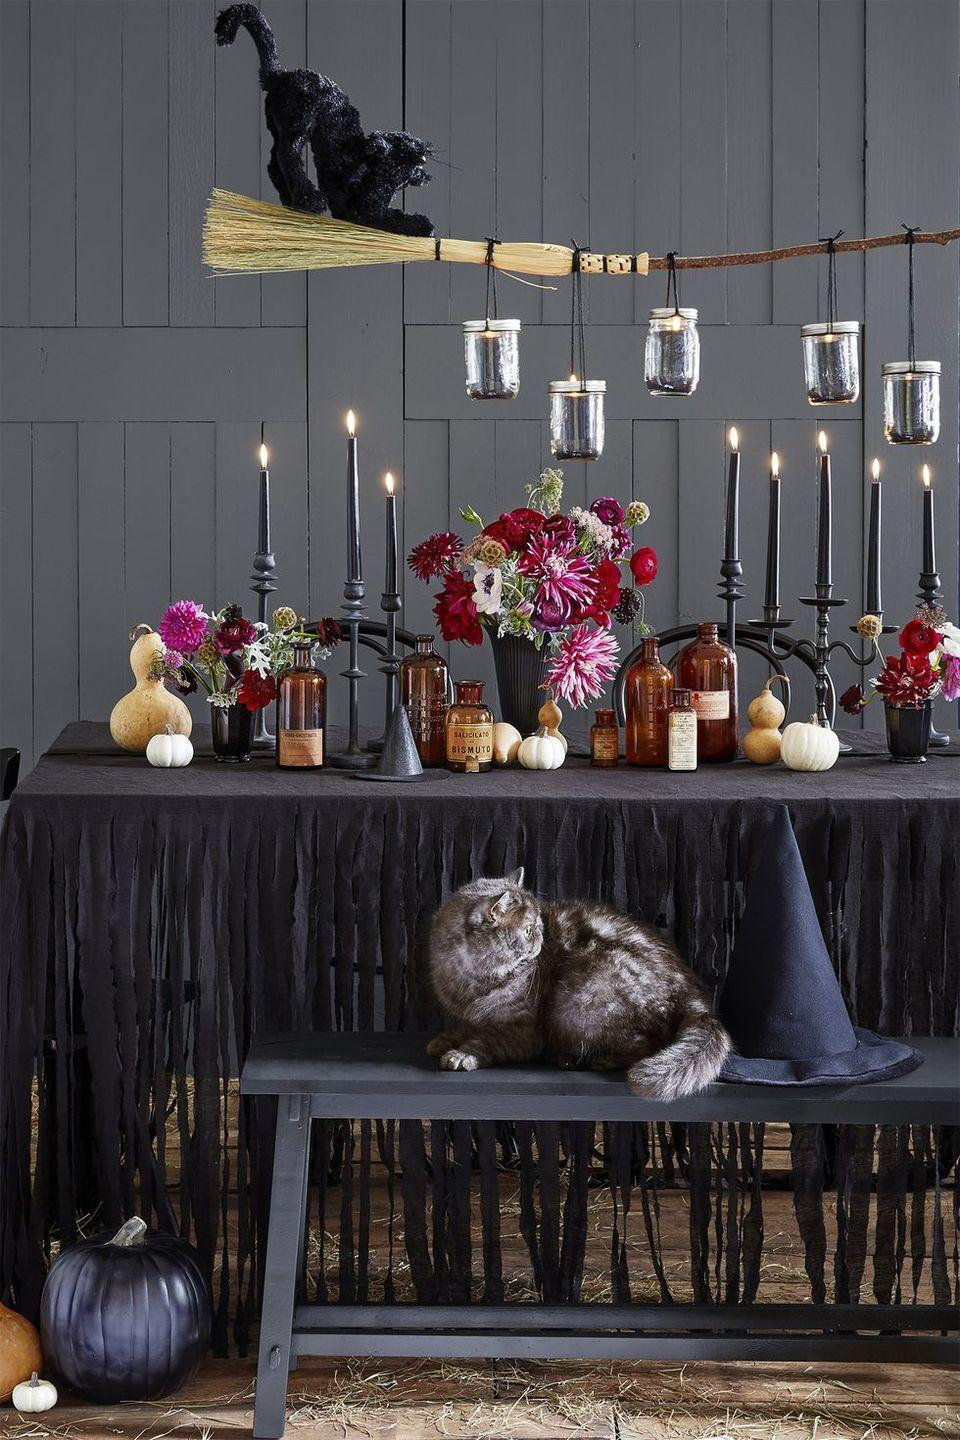 <p>Cast a spell over your dining room table by suspending a witch's broom from the ceiling. Carefully balance mason jars from the handle for added mood lighting. </p>